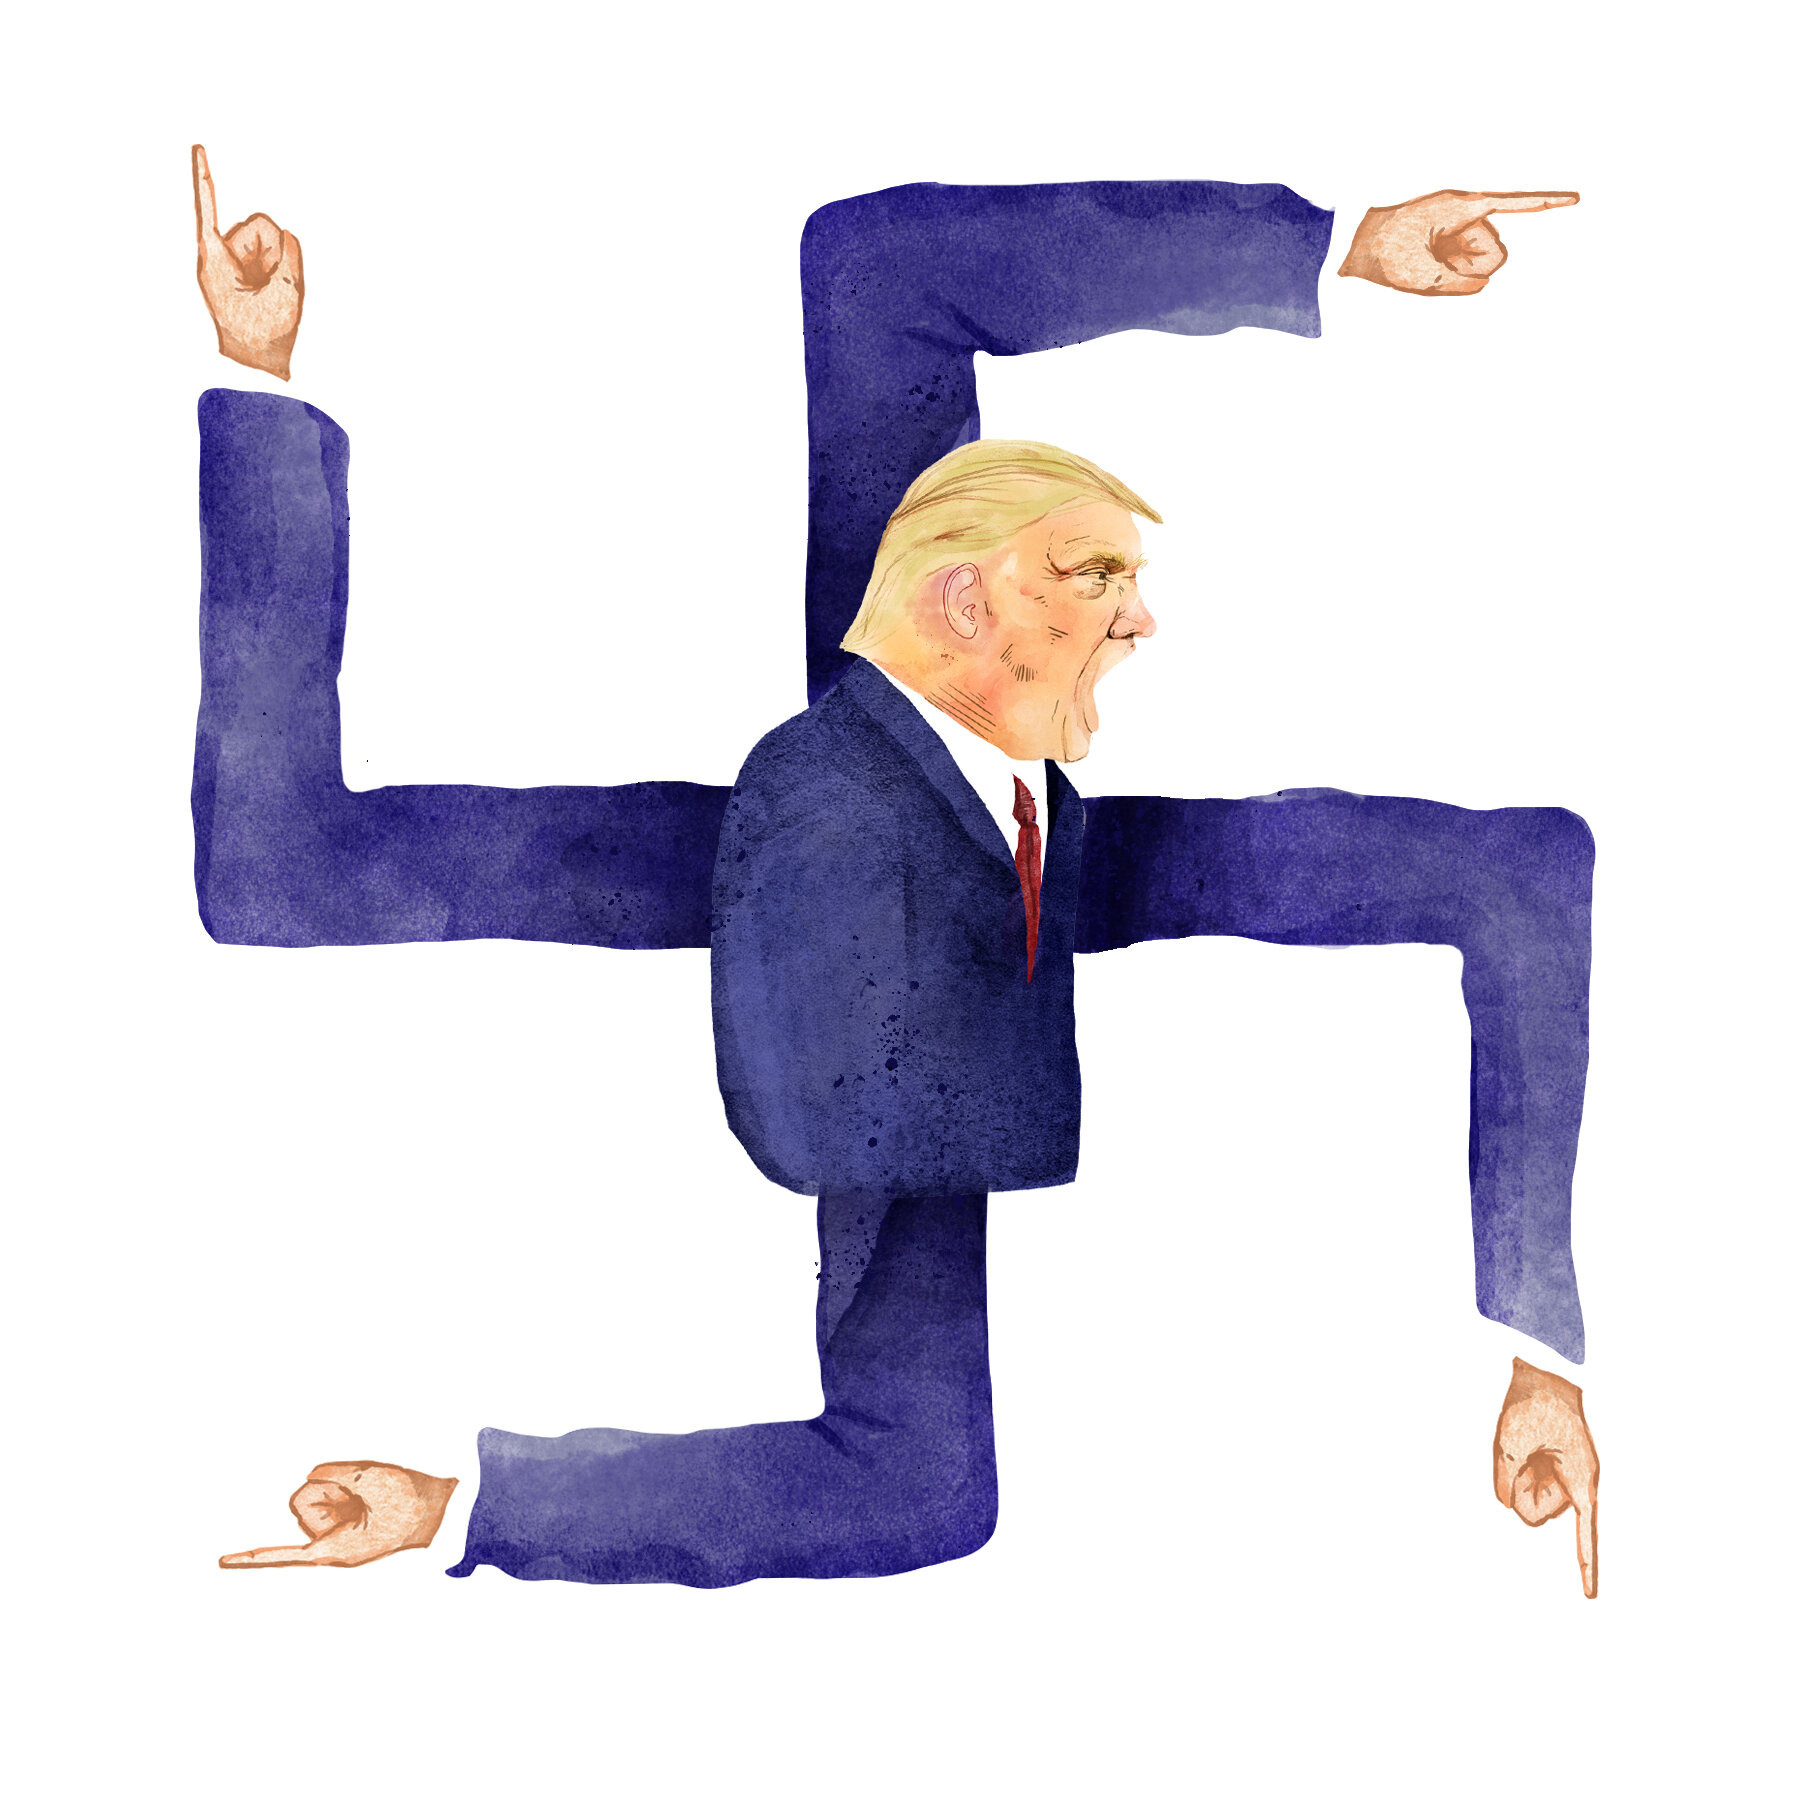 Editorial Illustration about Donald Trump and his almost neutral language towards the far-right participants after the Unite the Right protests in Charlottesville.